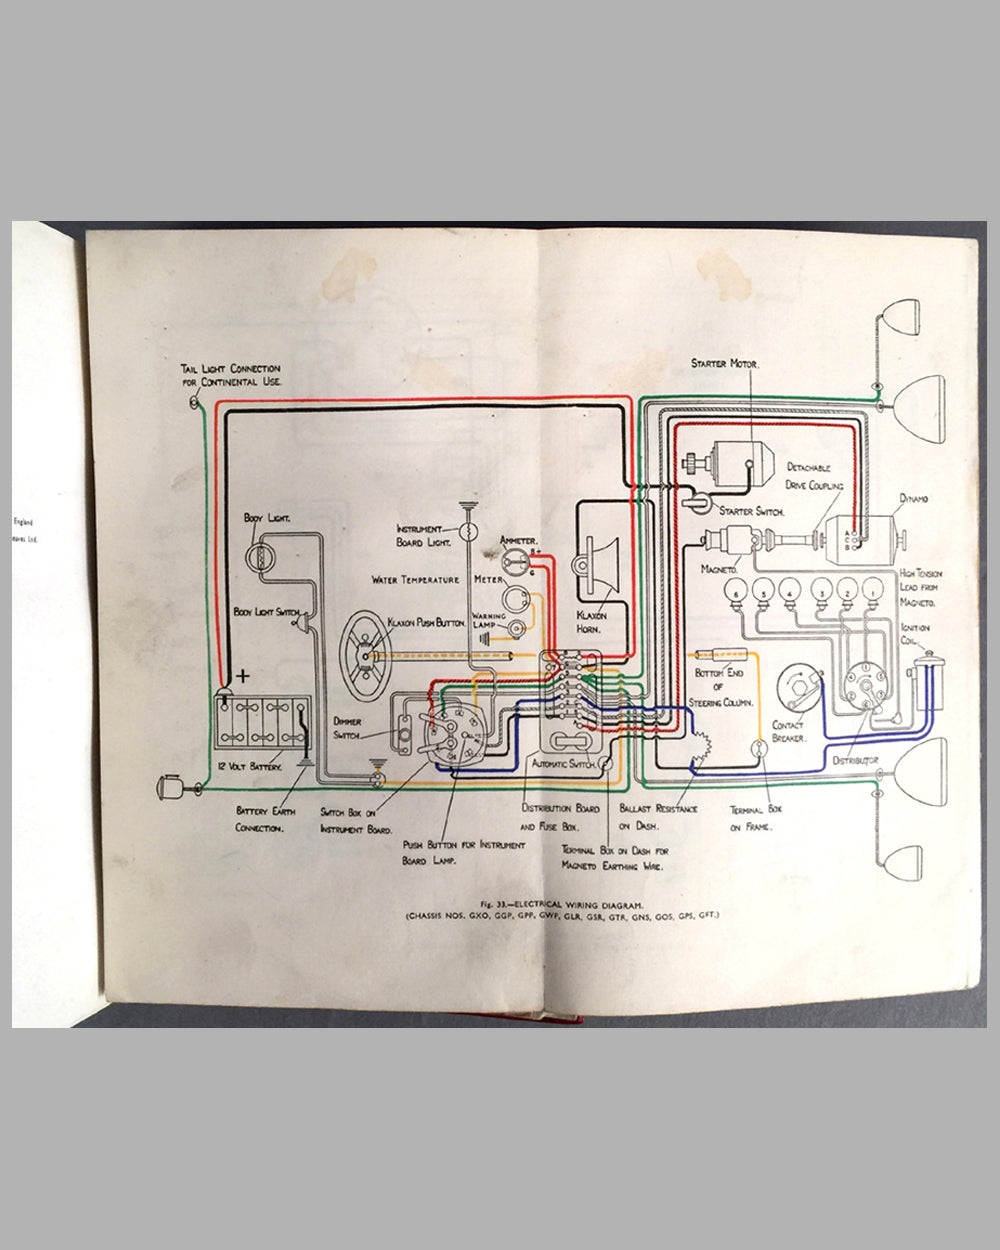 Rolls Royce factory handbook and maintenance manual for 20-25 H.P. on